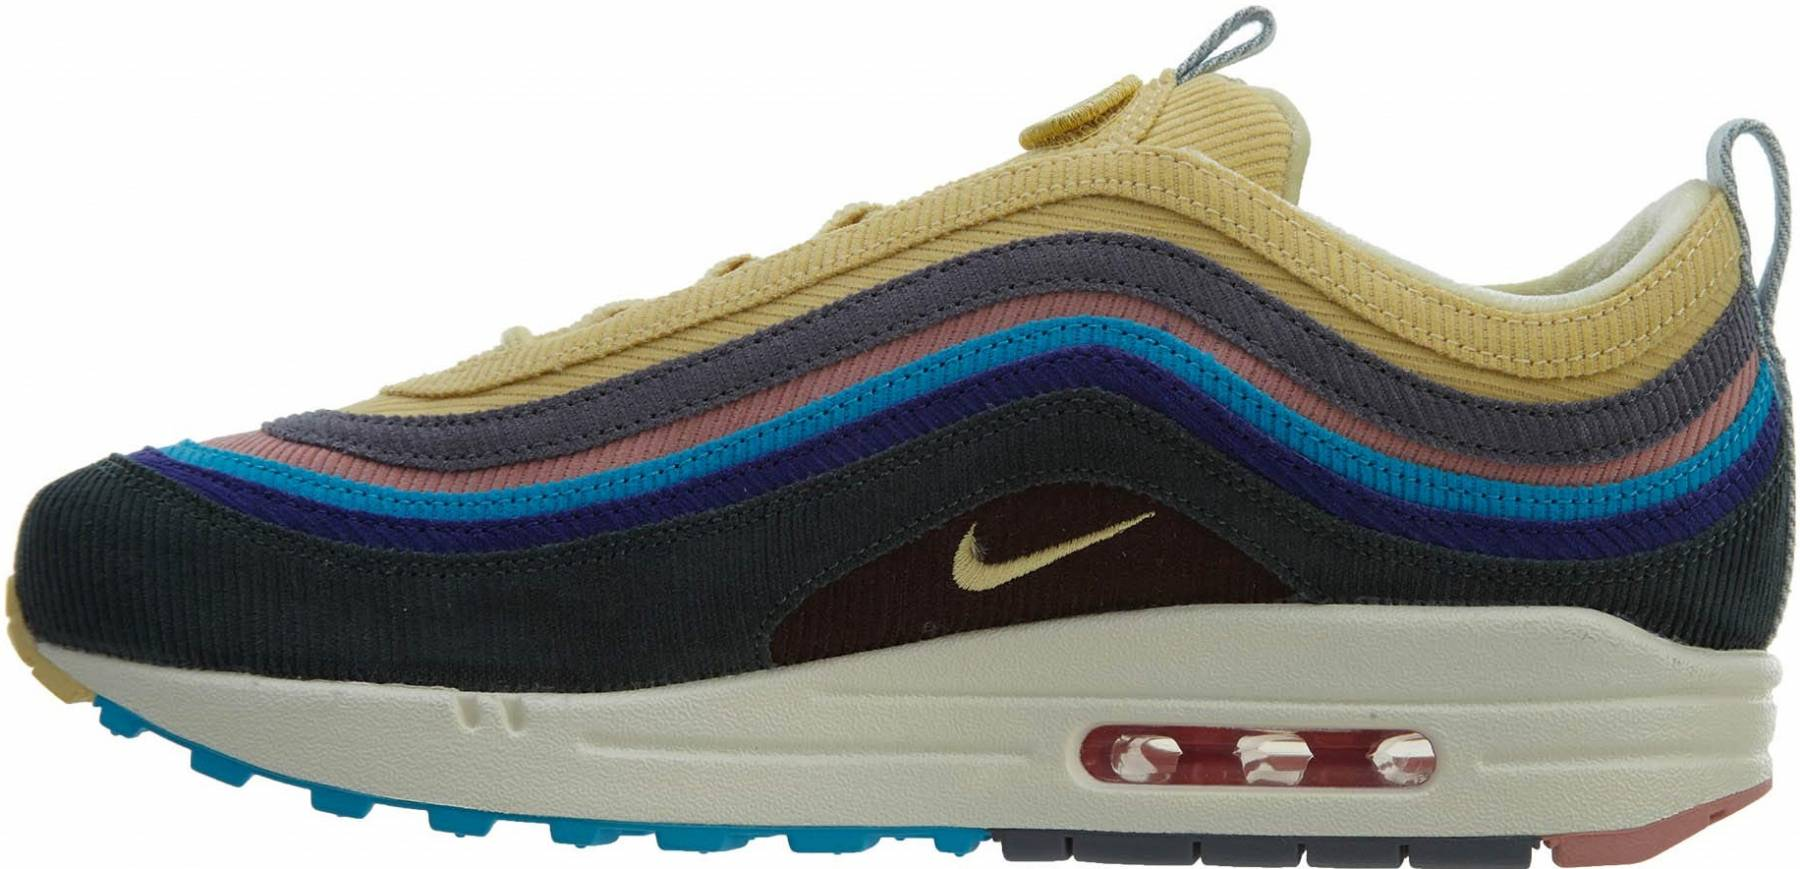 Lidiar con éxtasis Barrio  Save 26% on Nike Air Max 97 Sneakers (17 Models in Stock) | RunRepeat